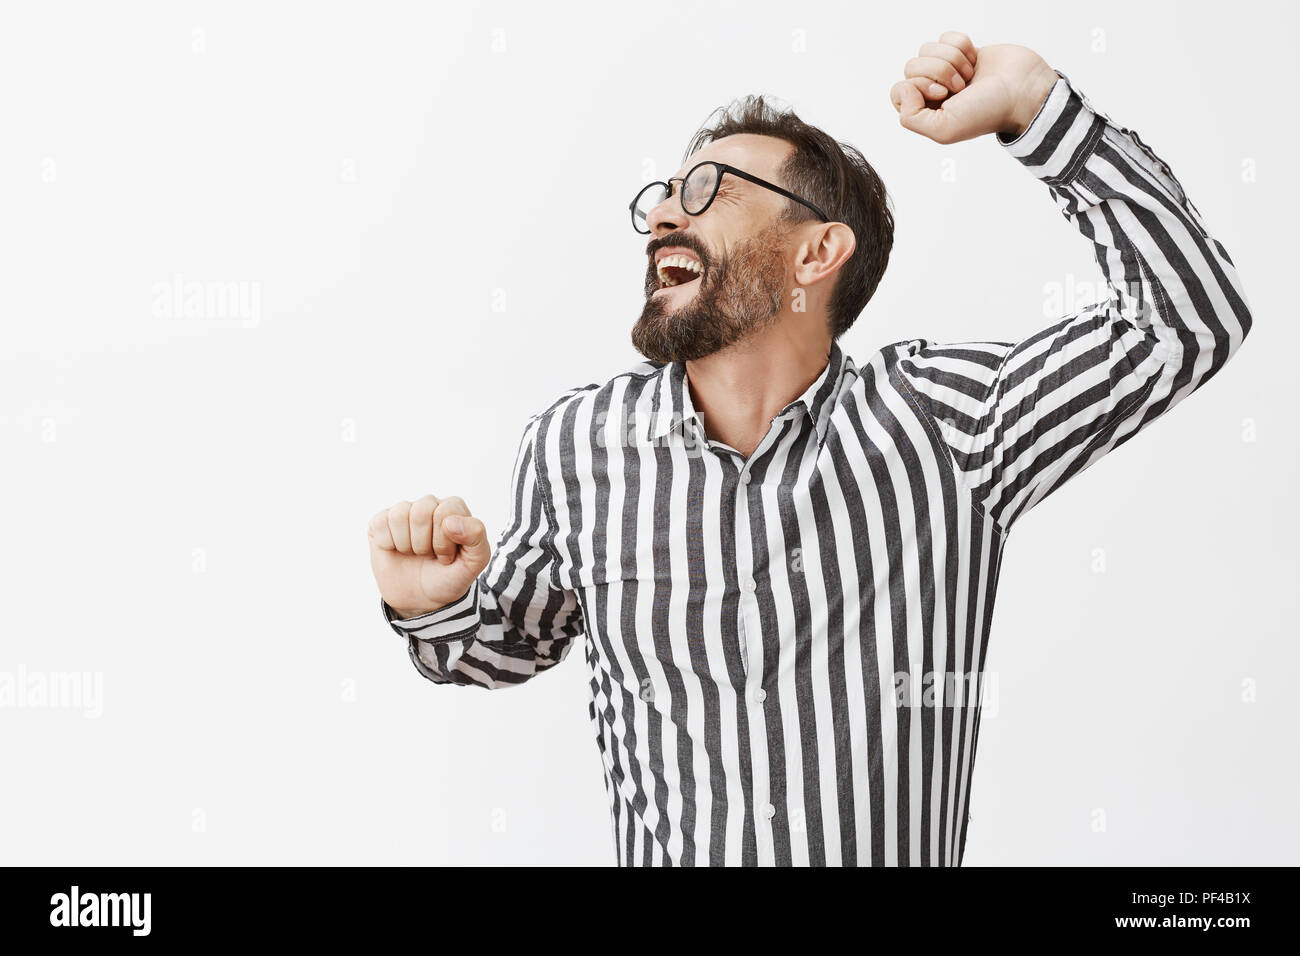 Happy tired man stretching while getting up from chair in office, going home. Portrait of exhausted funny adult man with dark short haircut and beard, pulling hands aside and yawning, feeling sleepy - Stock Image